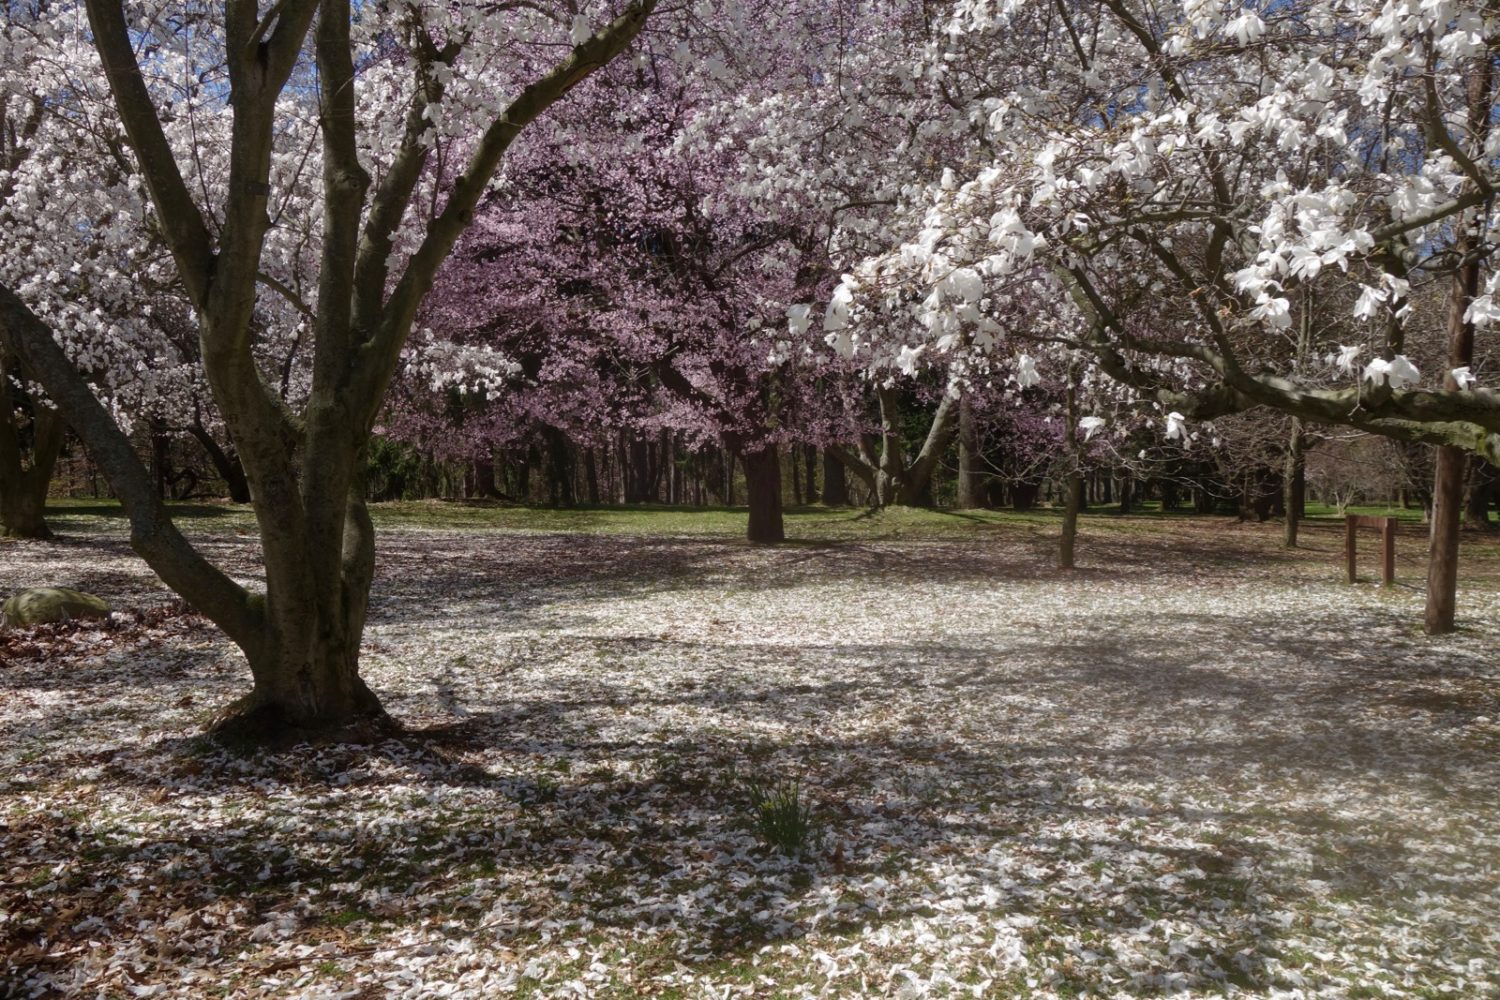 Magnolias in Durand Eastman Park at their peak.